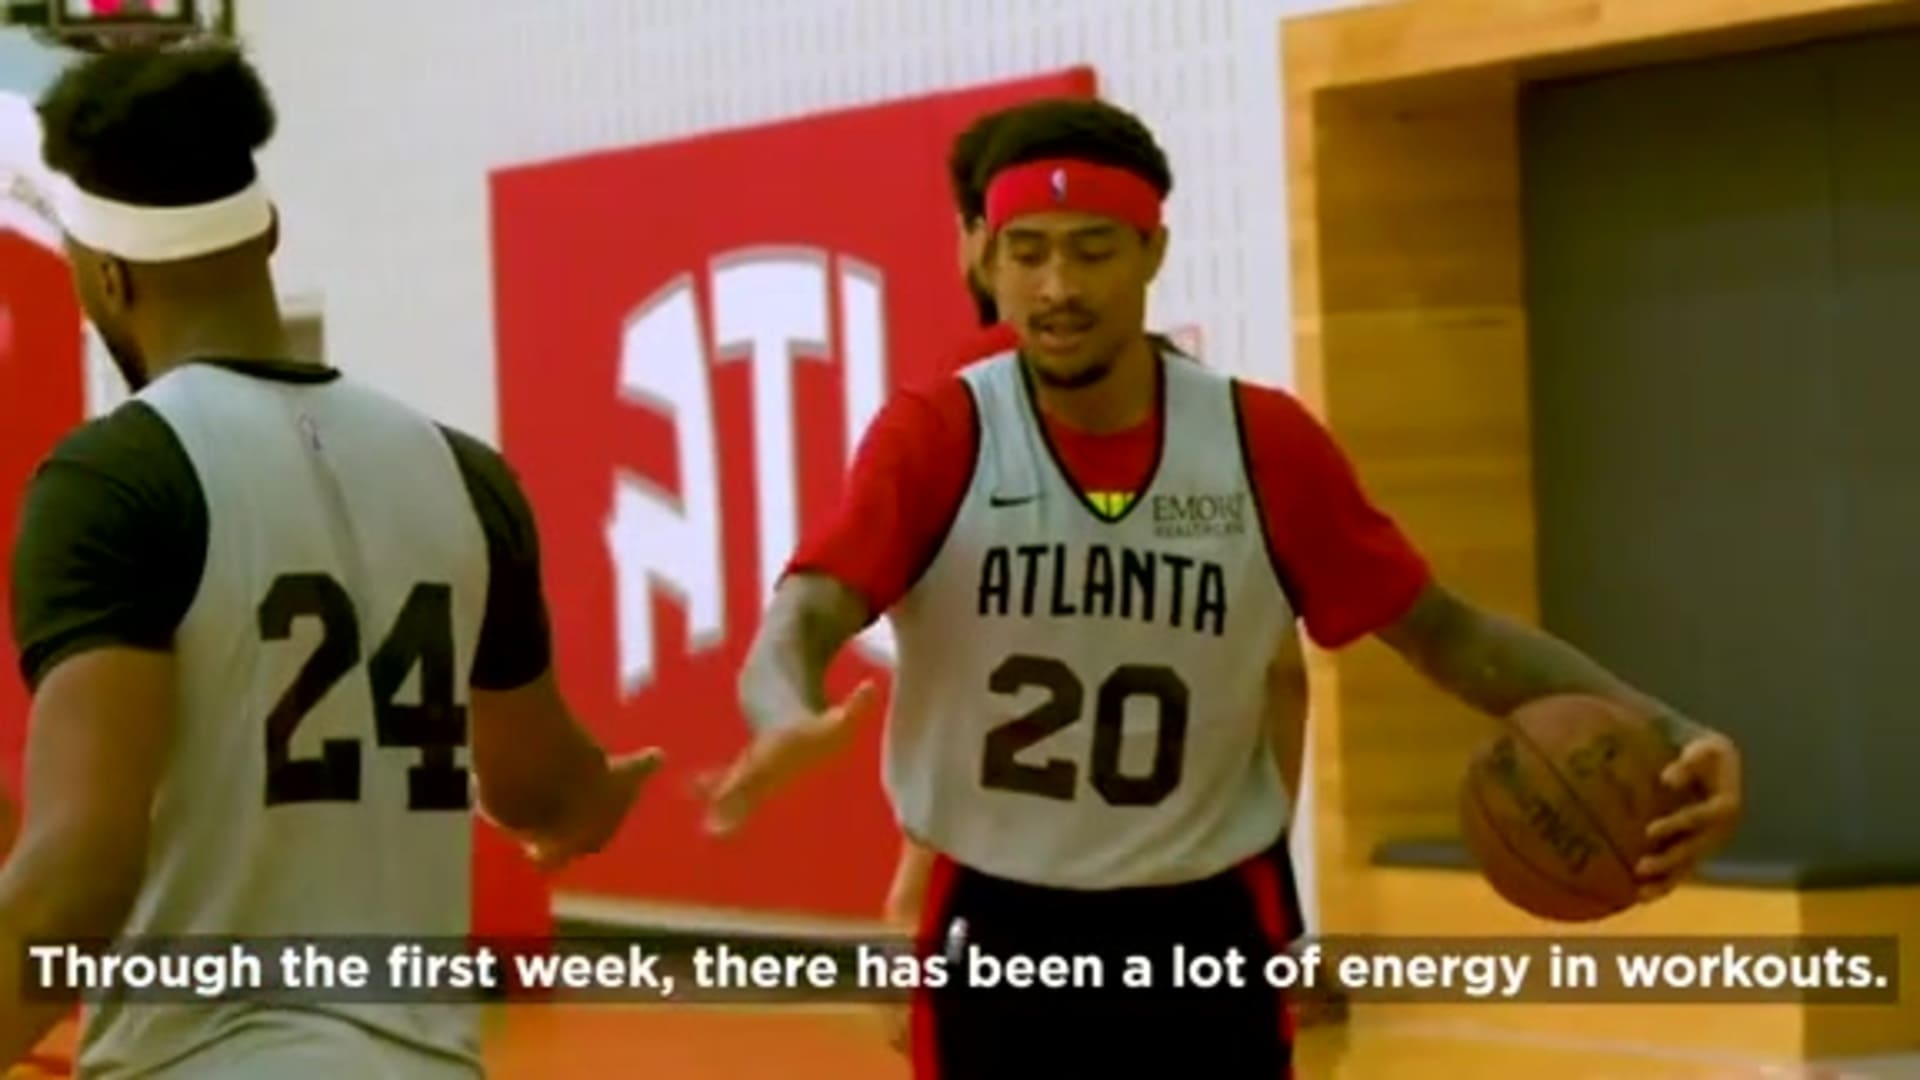 Hawks Practice Report Week 1: Presented by Michelob ULTRA